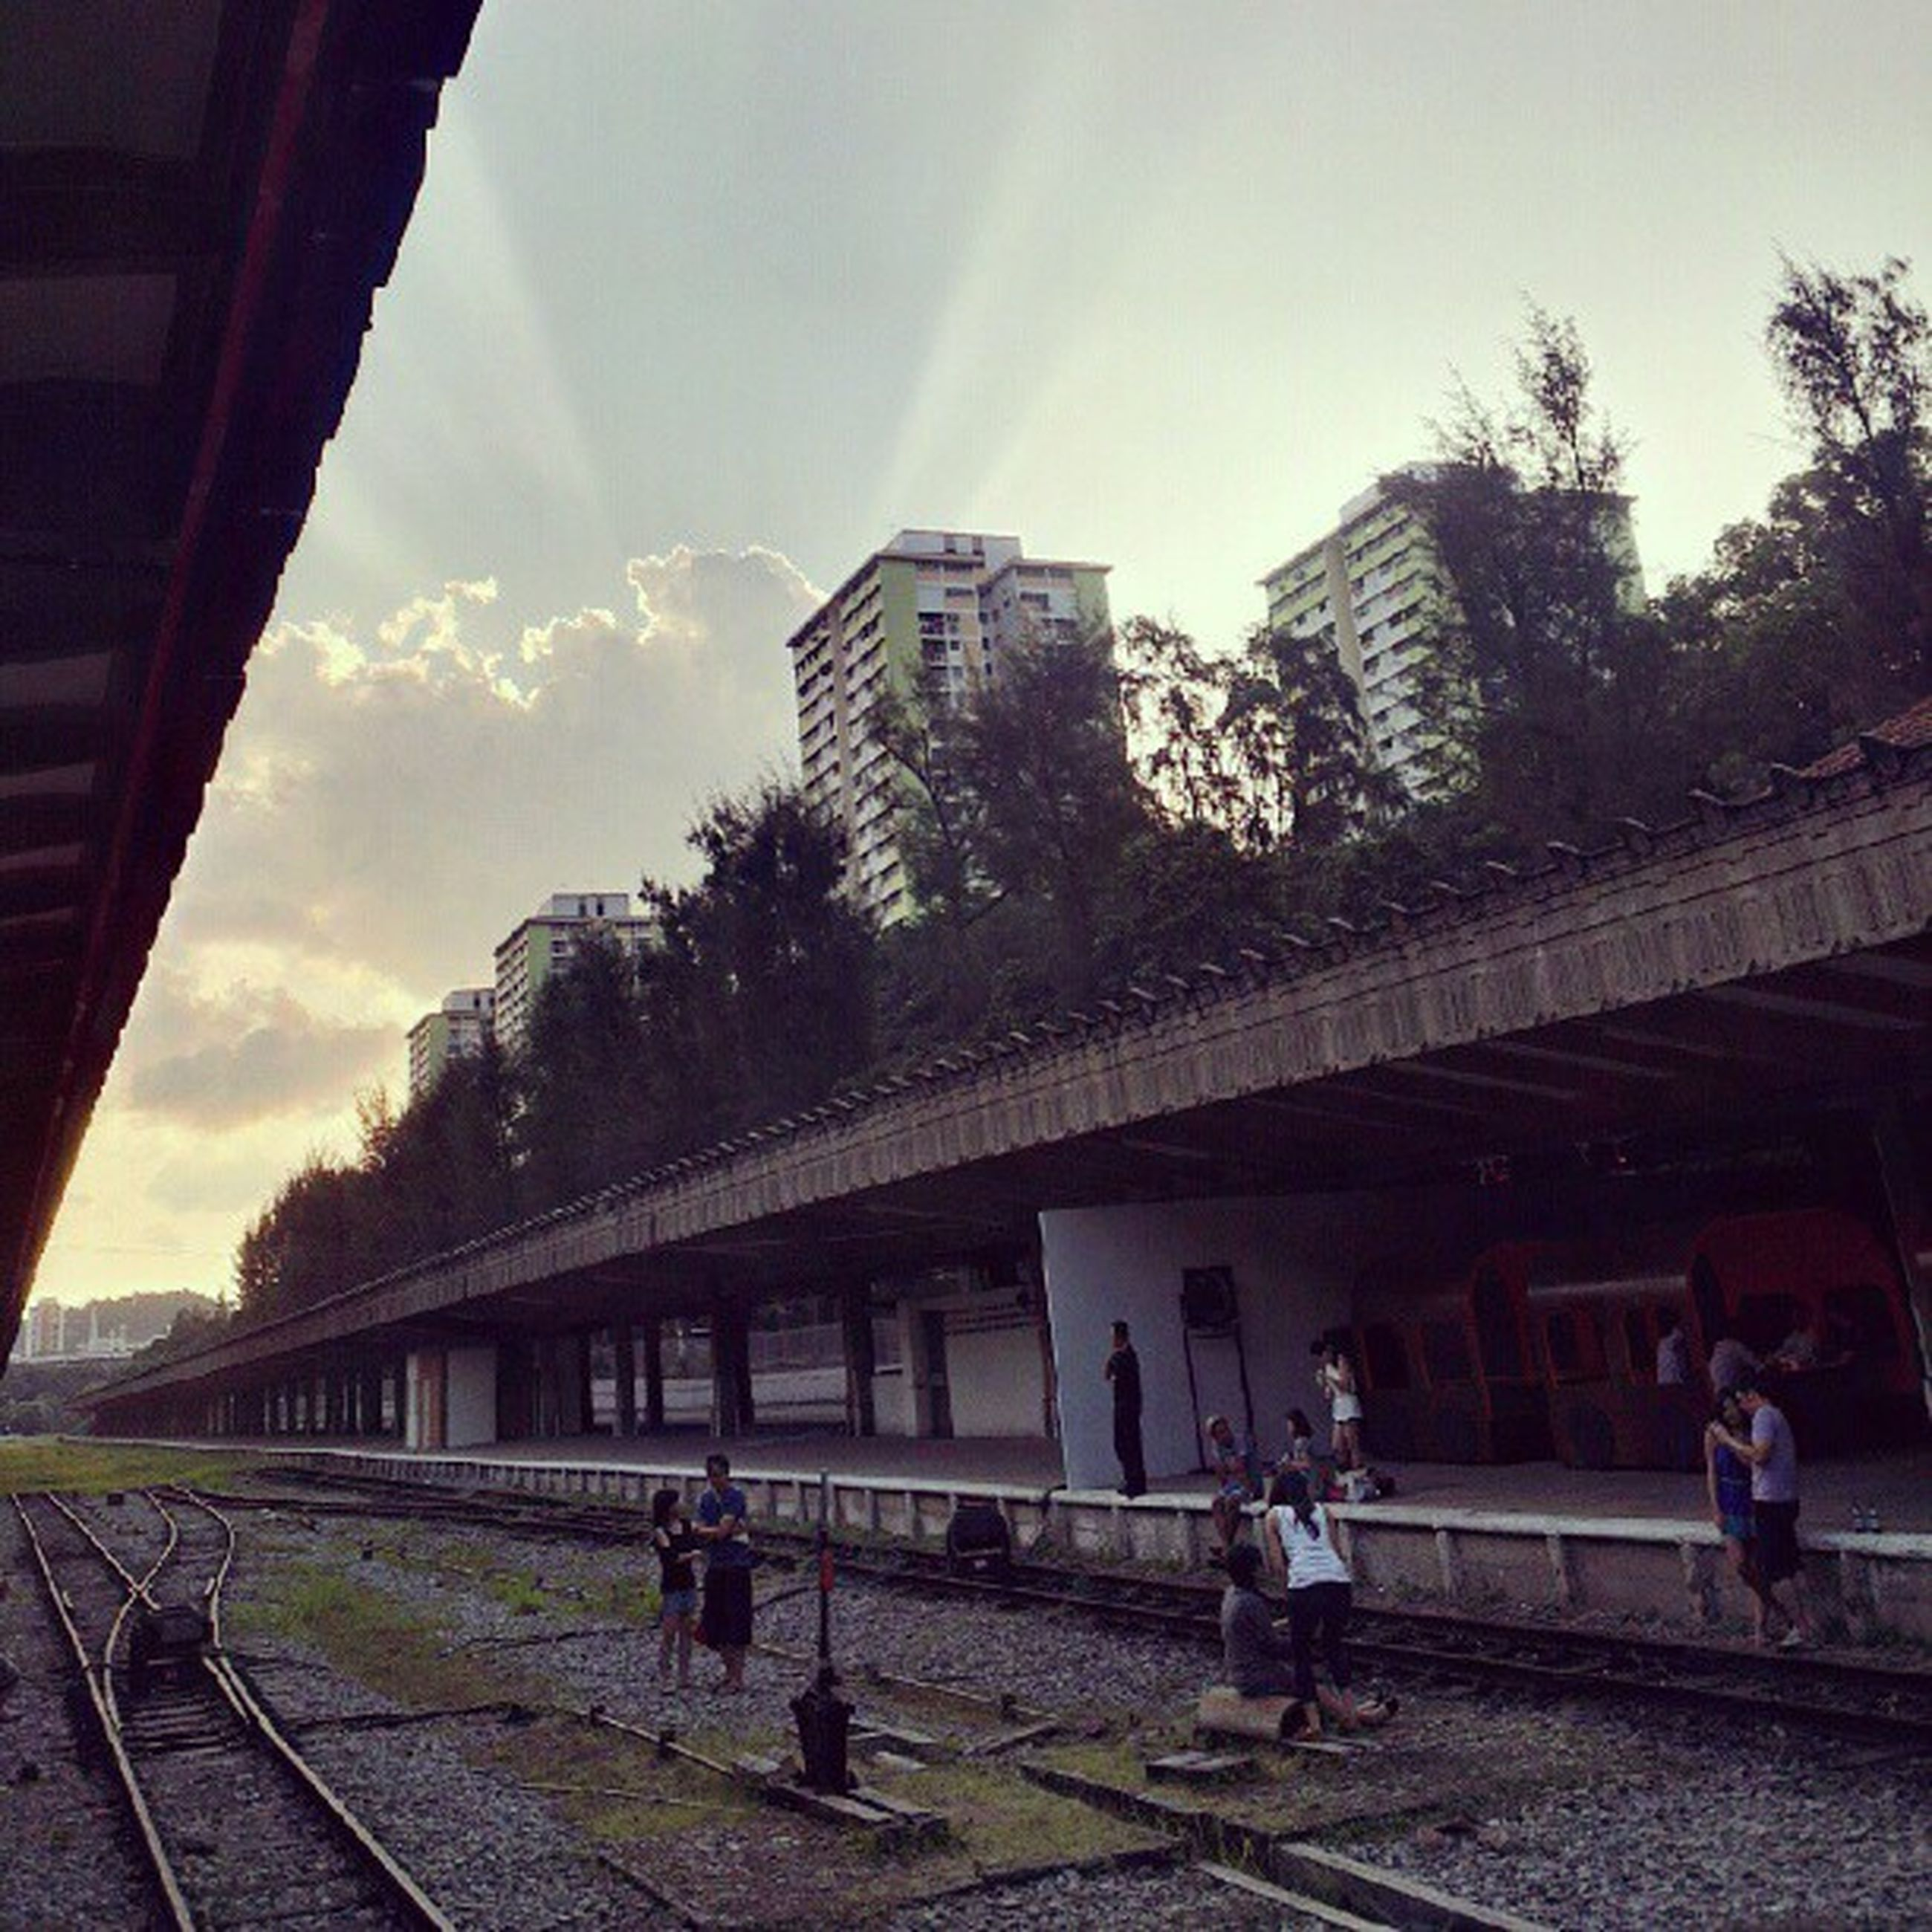 architecture, built structure, building exterior, lifestyles, men, person, sky, city, leisure activity, walking, large group of people, city life, tree, sunlight, railroad track, railing, full length, day, cloud - sky